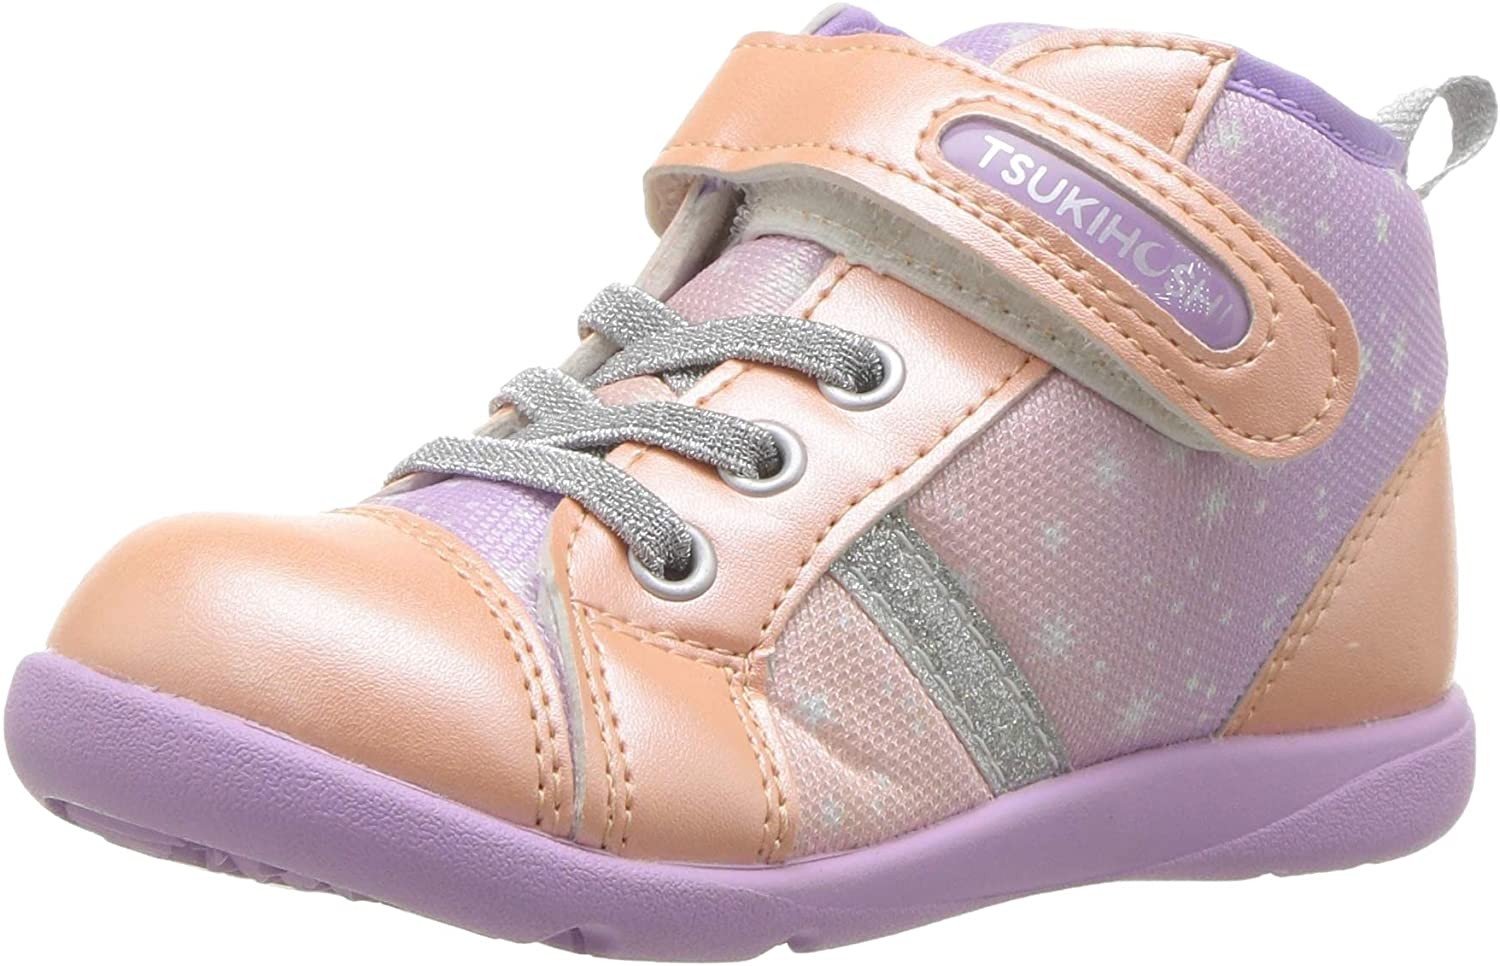 Child Tsukihoshi Star Sneaker  in Peach/Lavender from the front view